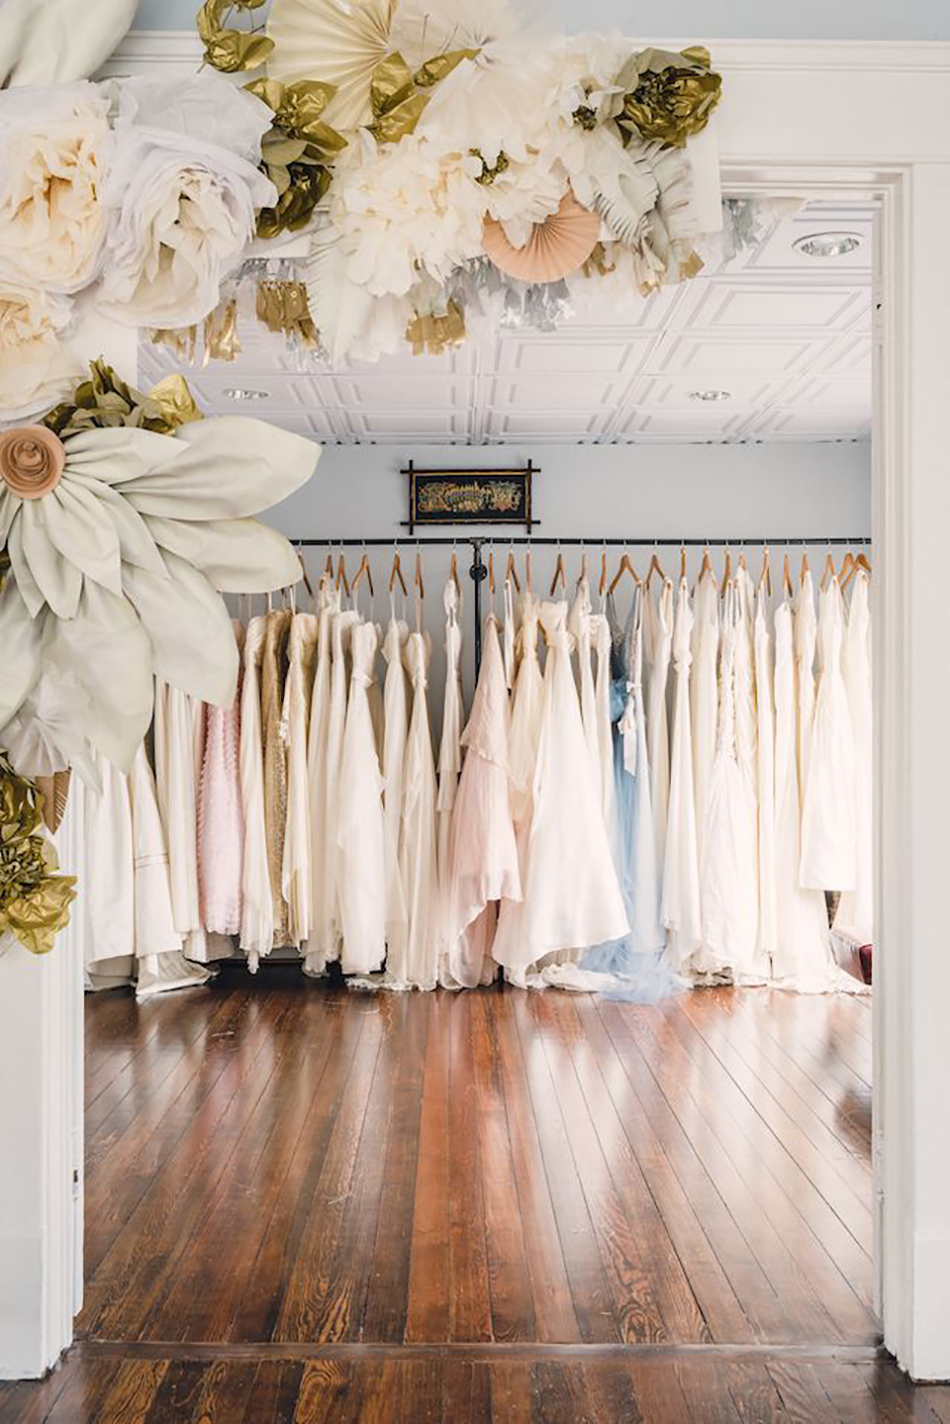 6 tips to finding the wedding dress of your dreams